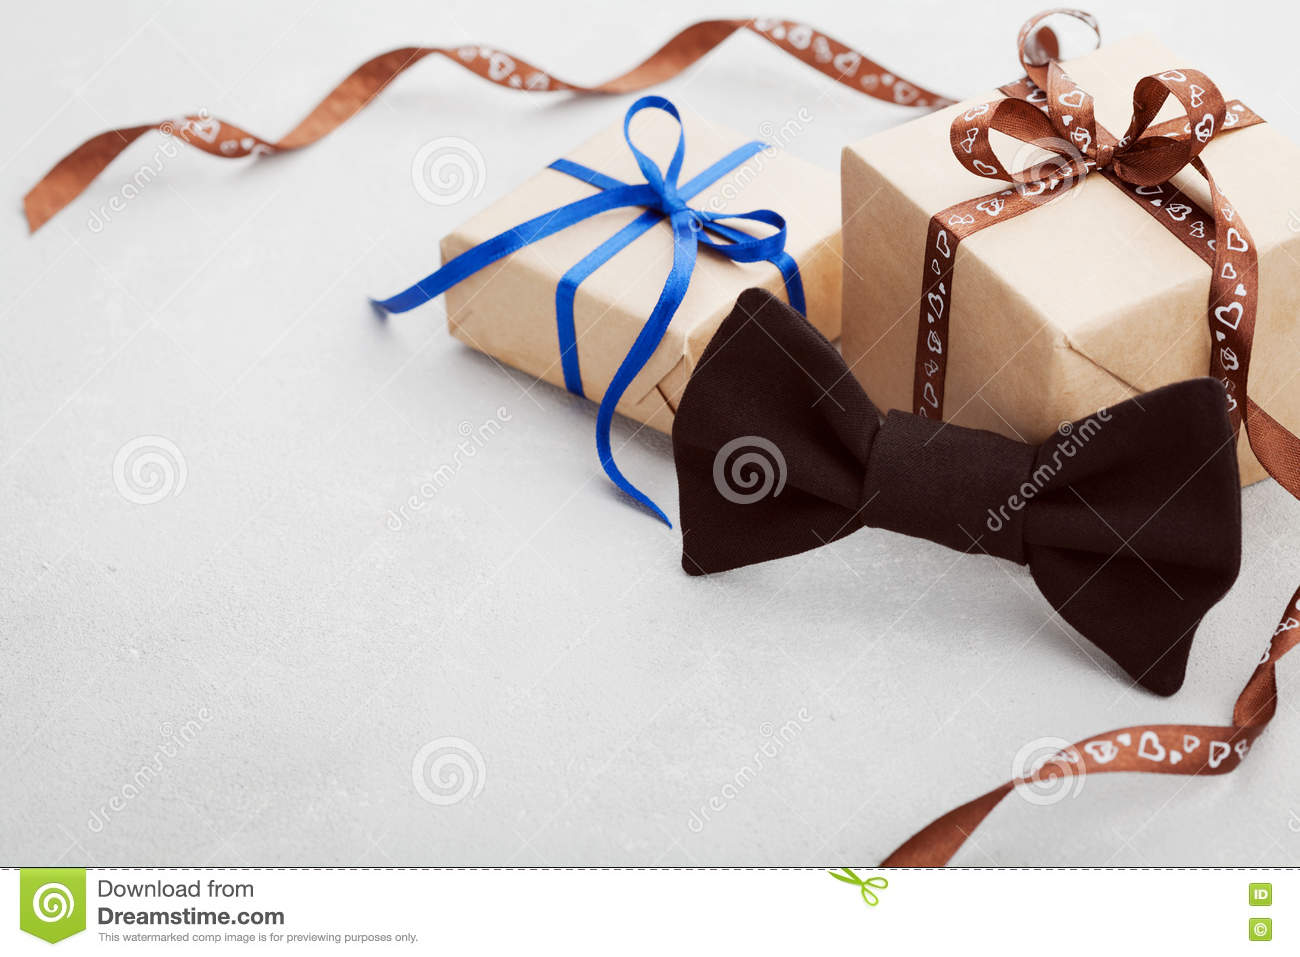 Gift or present box with ribbon and bowtie on gray desk for Happy Fathers Day, copy space for your text or design